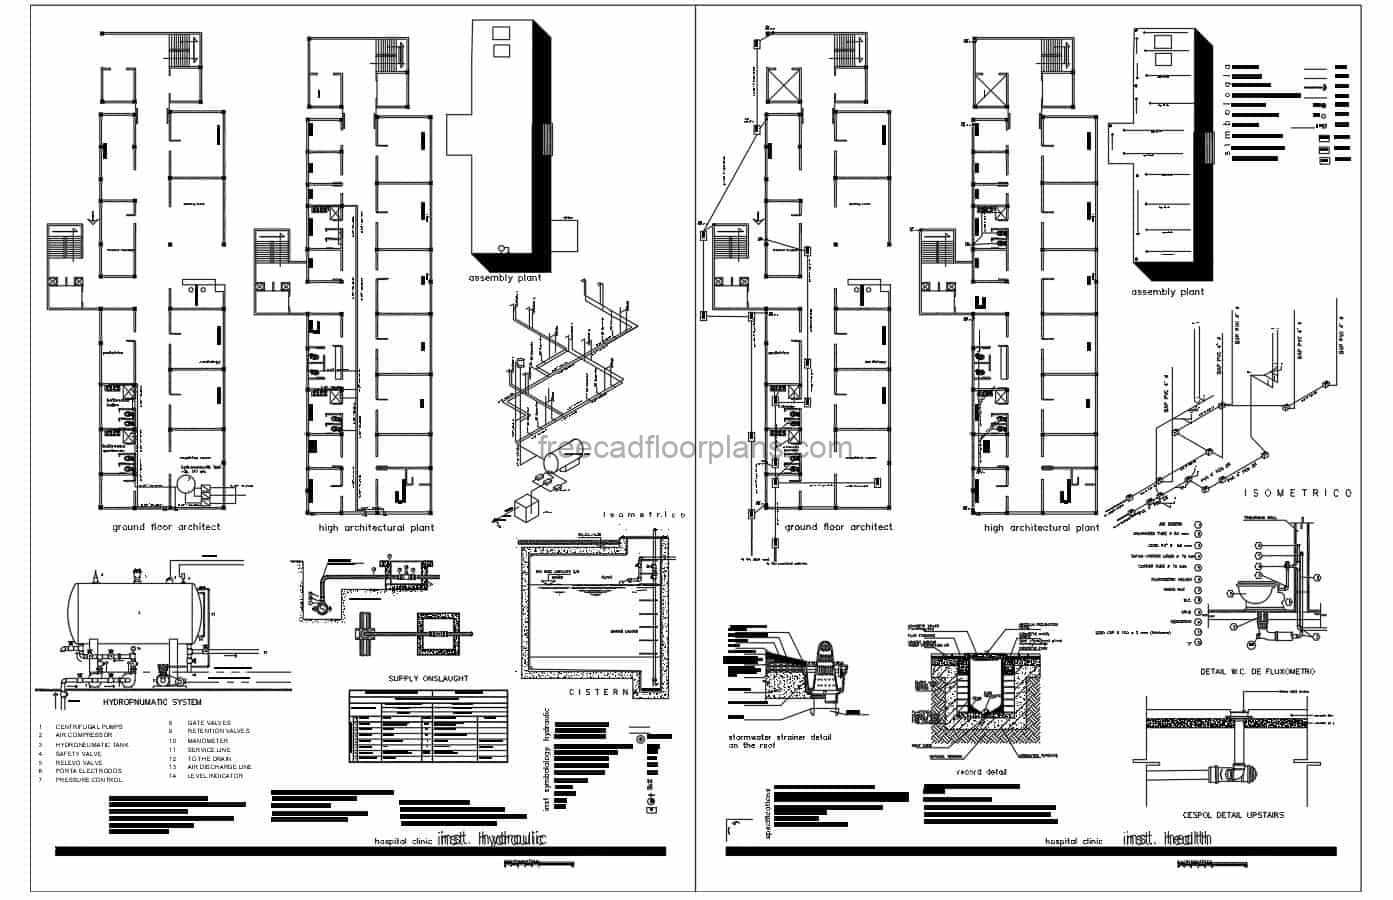 Complete architectural design of a two level health center with surgery, cardiology, pediatrics and other health center spaces. The complete project includes sanitary isometrics, foundation details, water supply plans, electrical and structural plans, technical details, emergency exits plan in the clinic. Free AutoCAD drawings for download in DWG format.